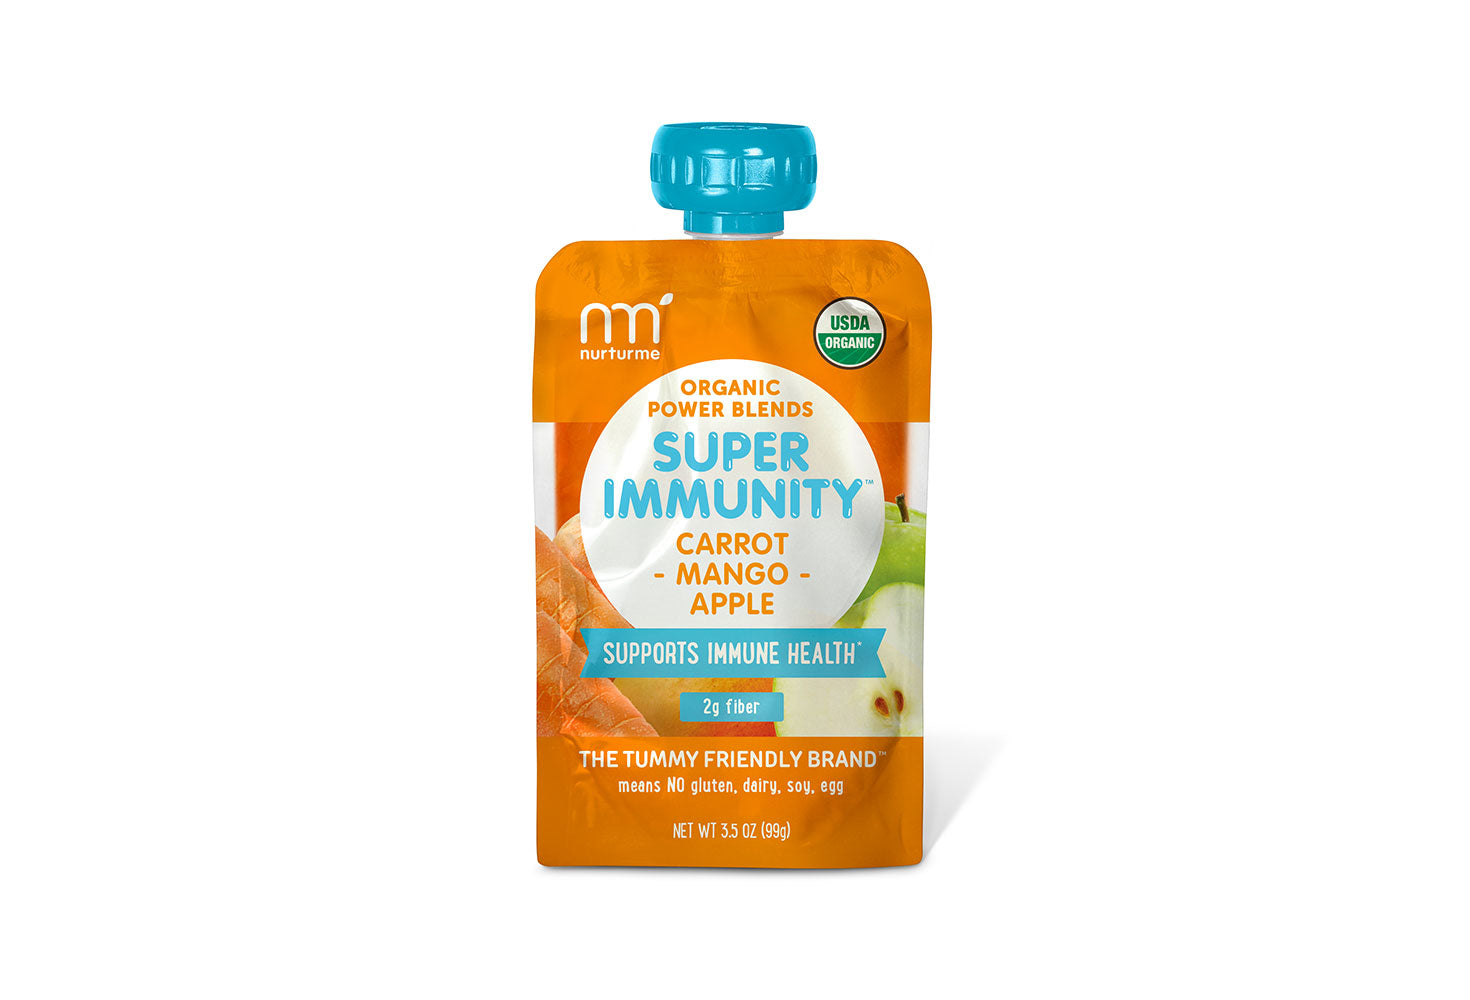 Power Blends Super Immunity: Carrot, Mango and Apple